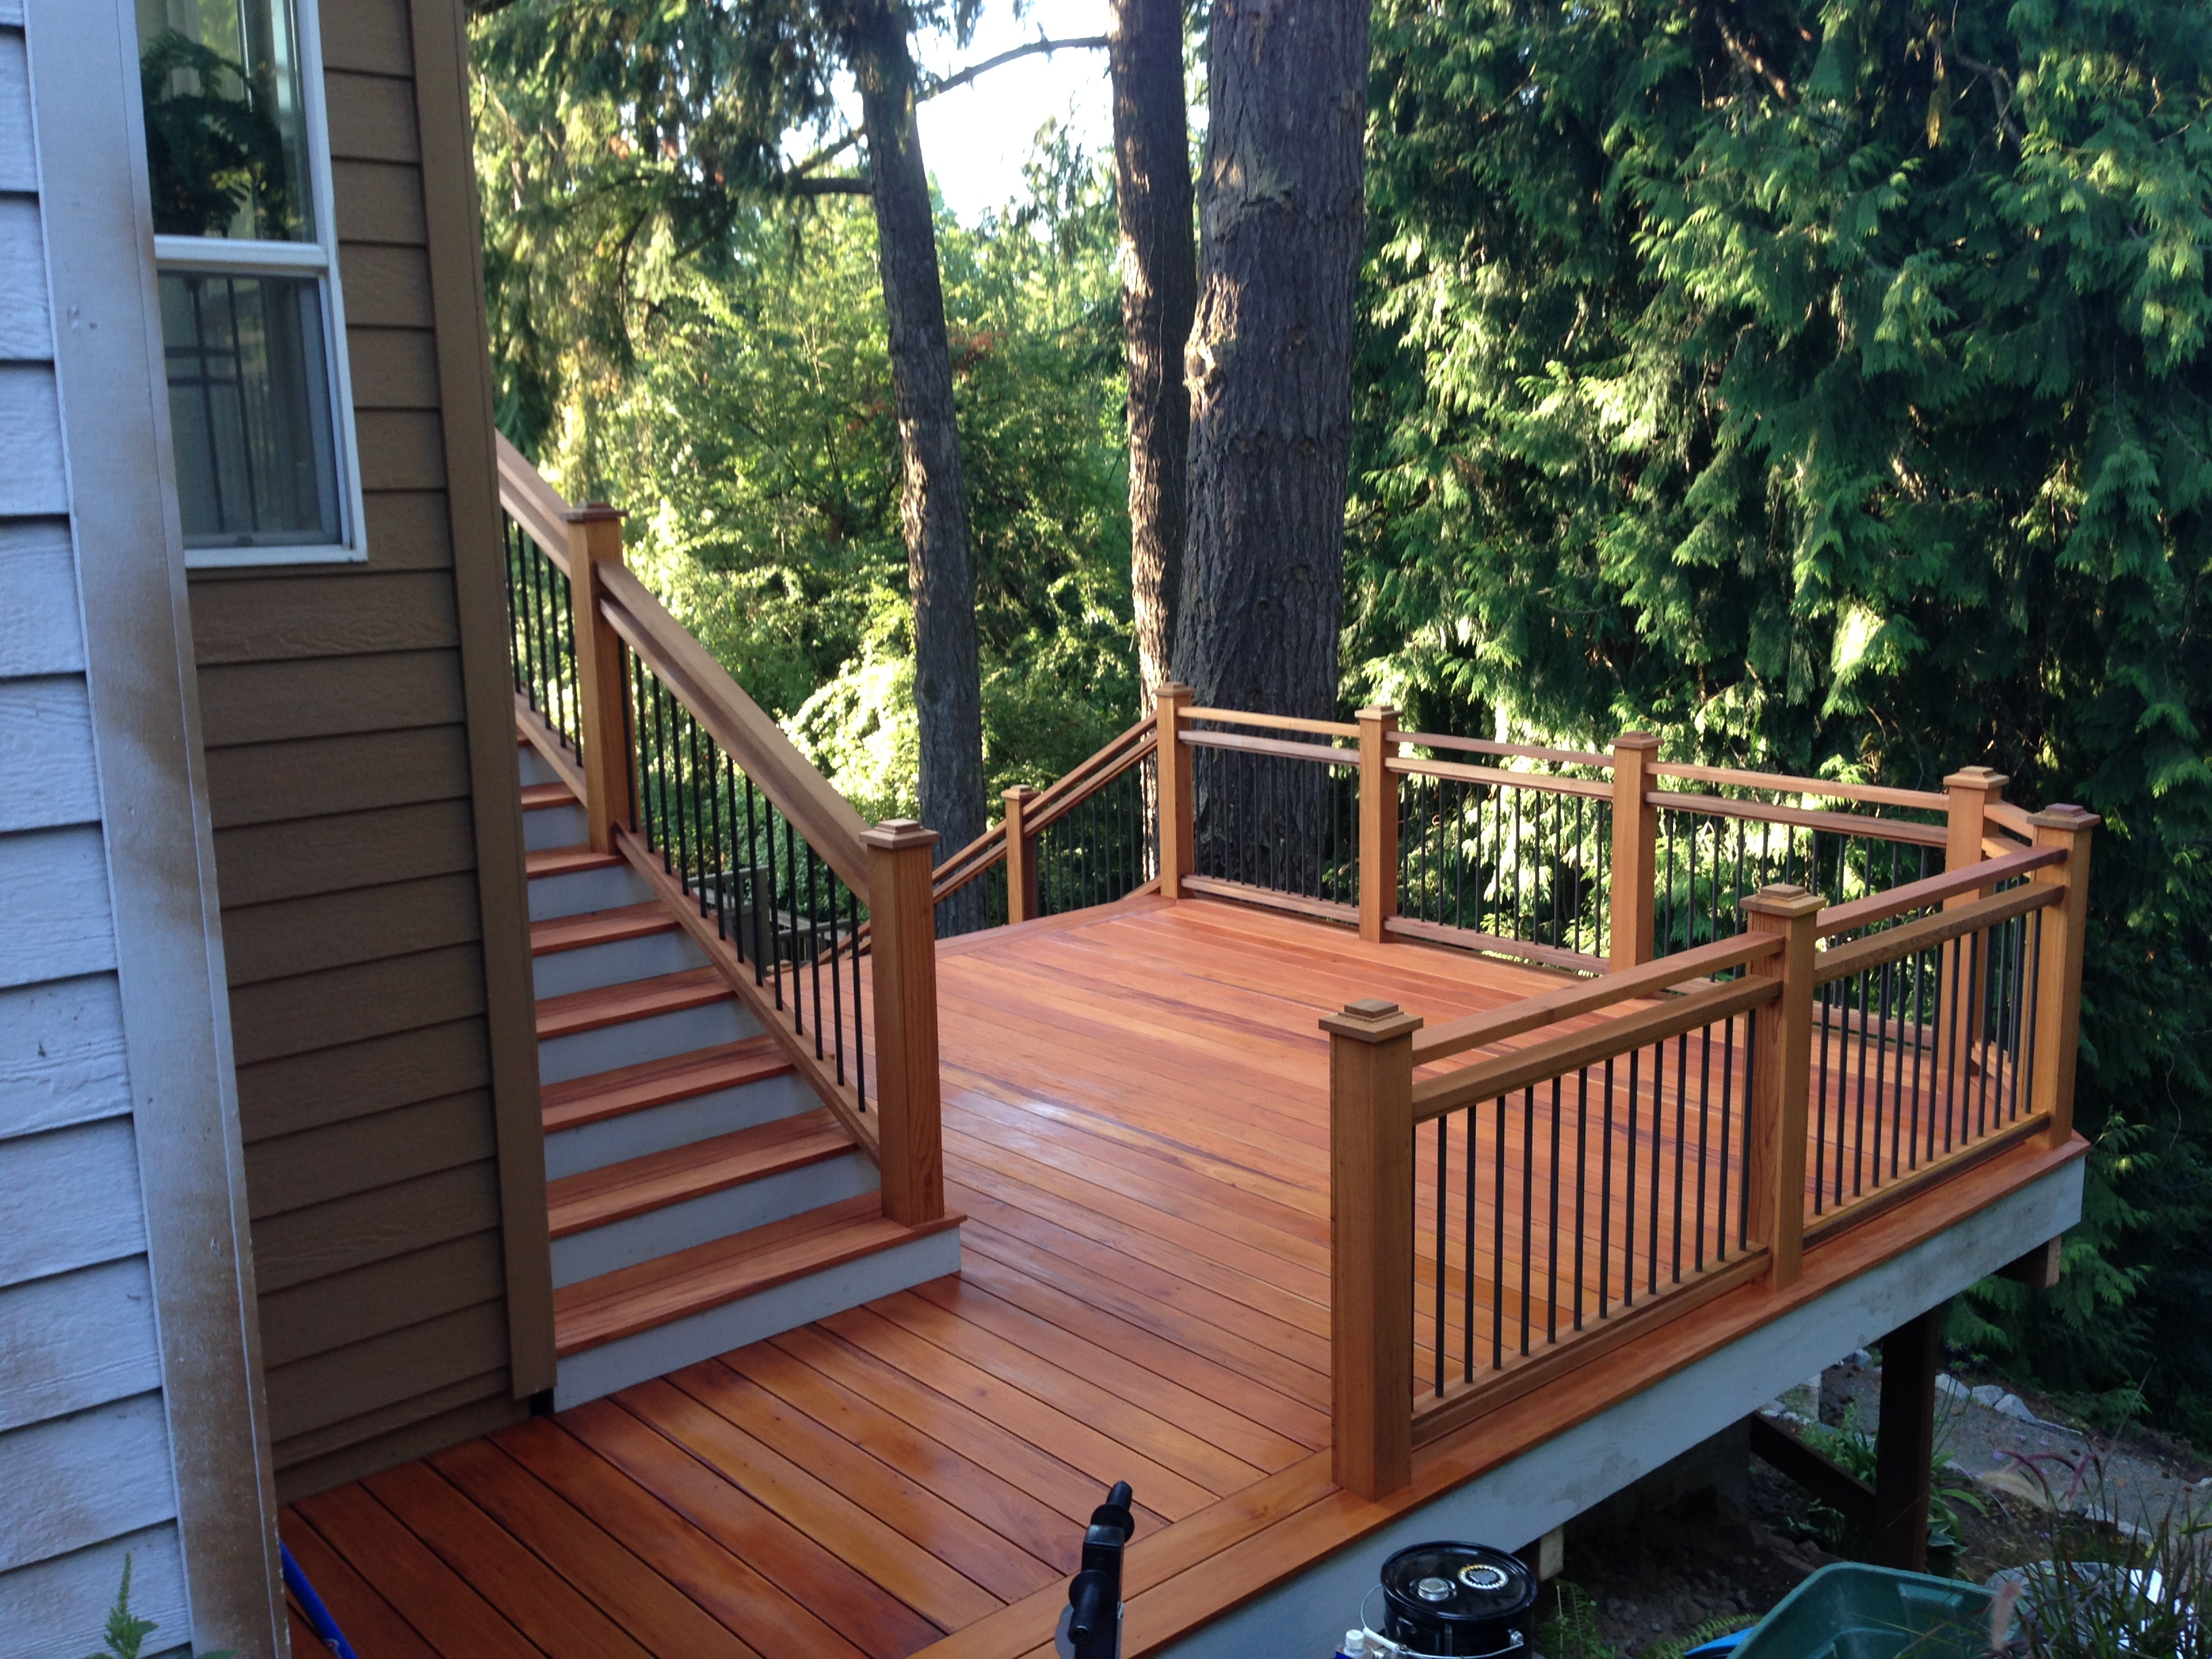 fijian mahogany deck in sw portland portland deck builder creative fences decks design construction